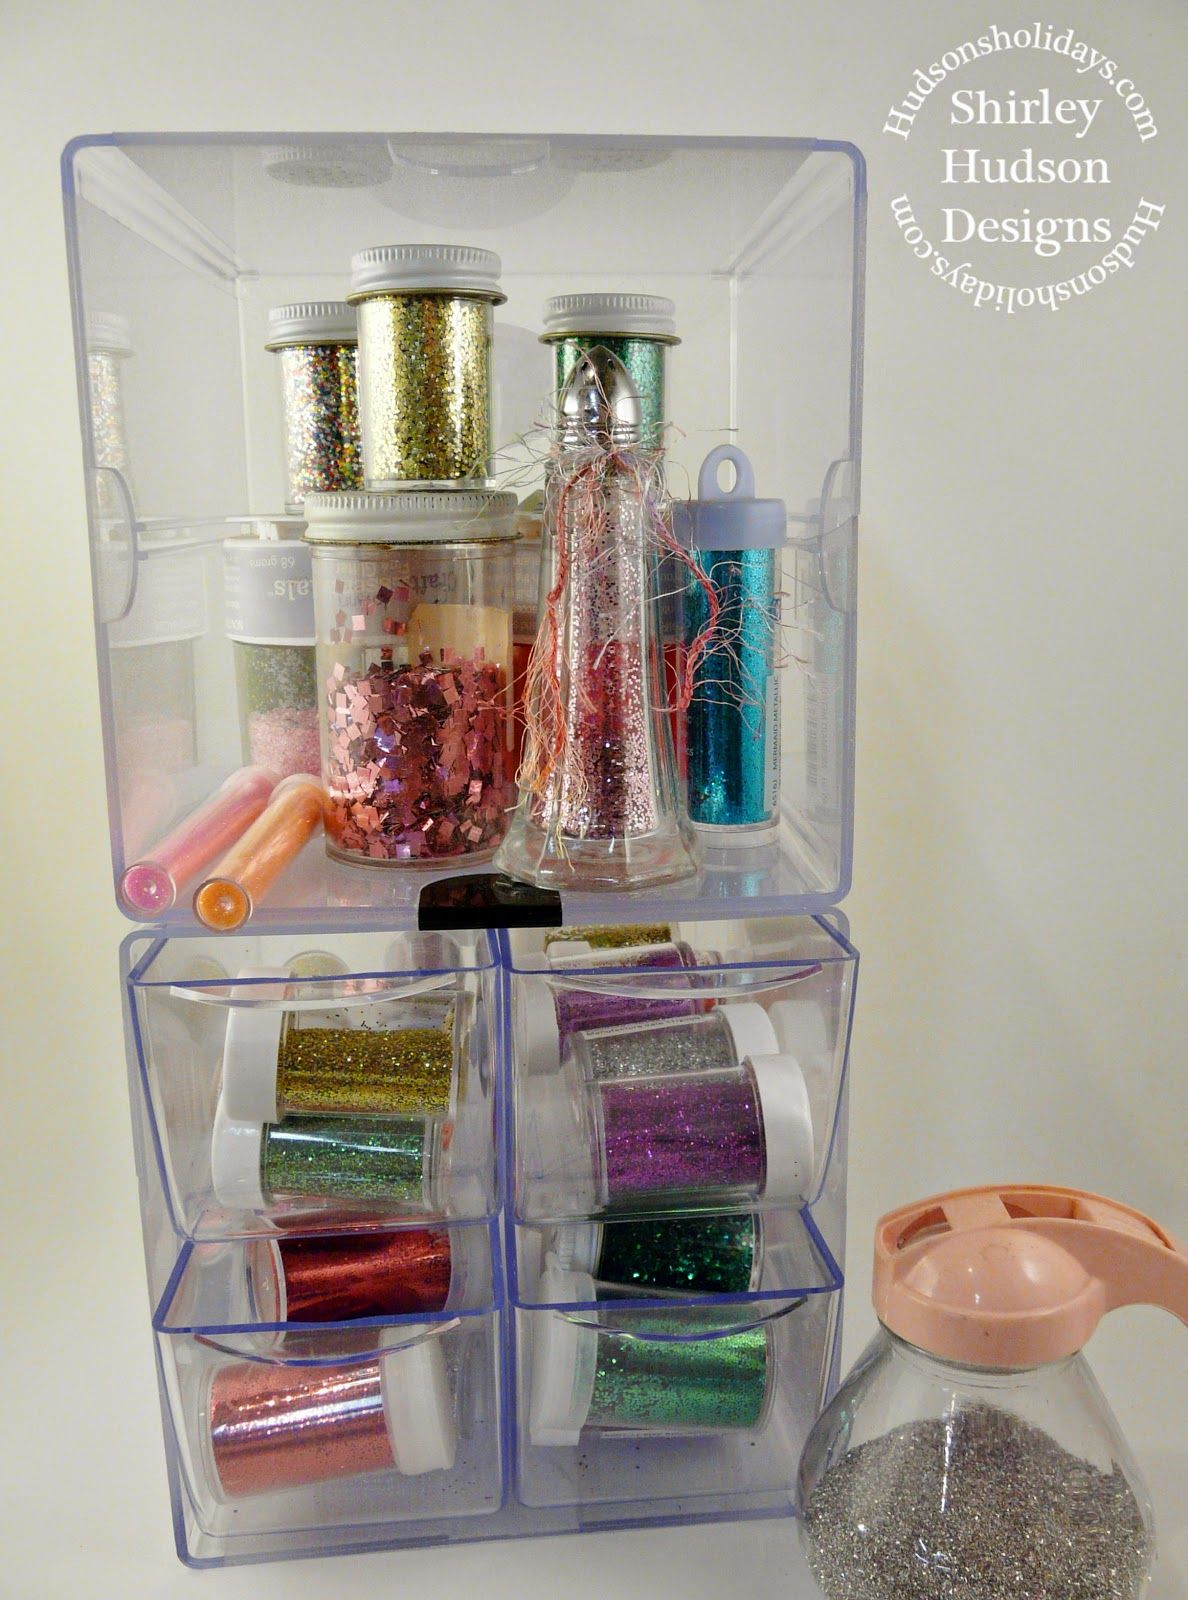 Hudson's Holidays - Designer Shirley Hudson: Chalk boards & more..glitter caddy organizer